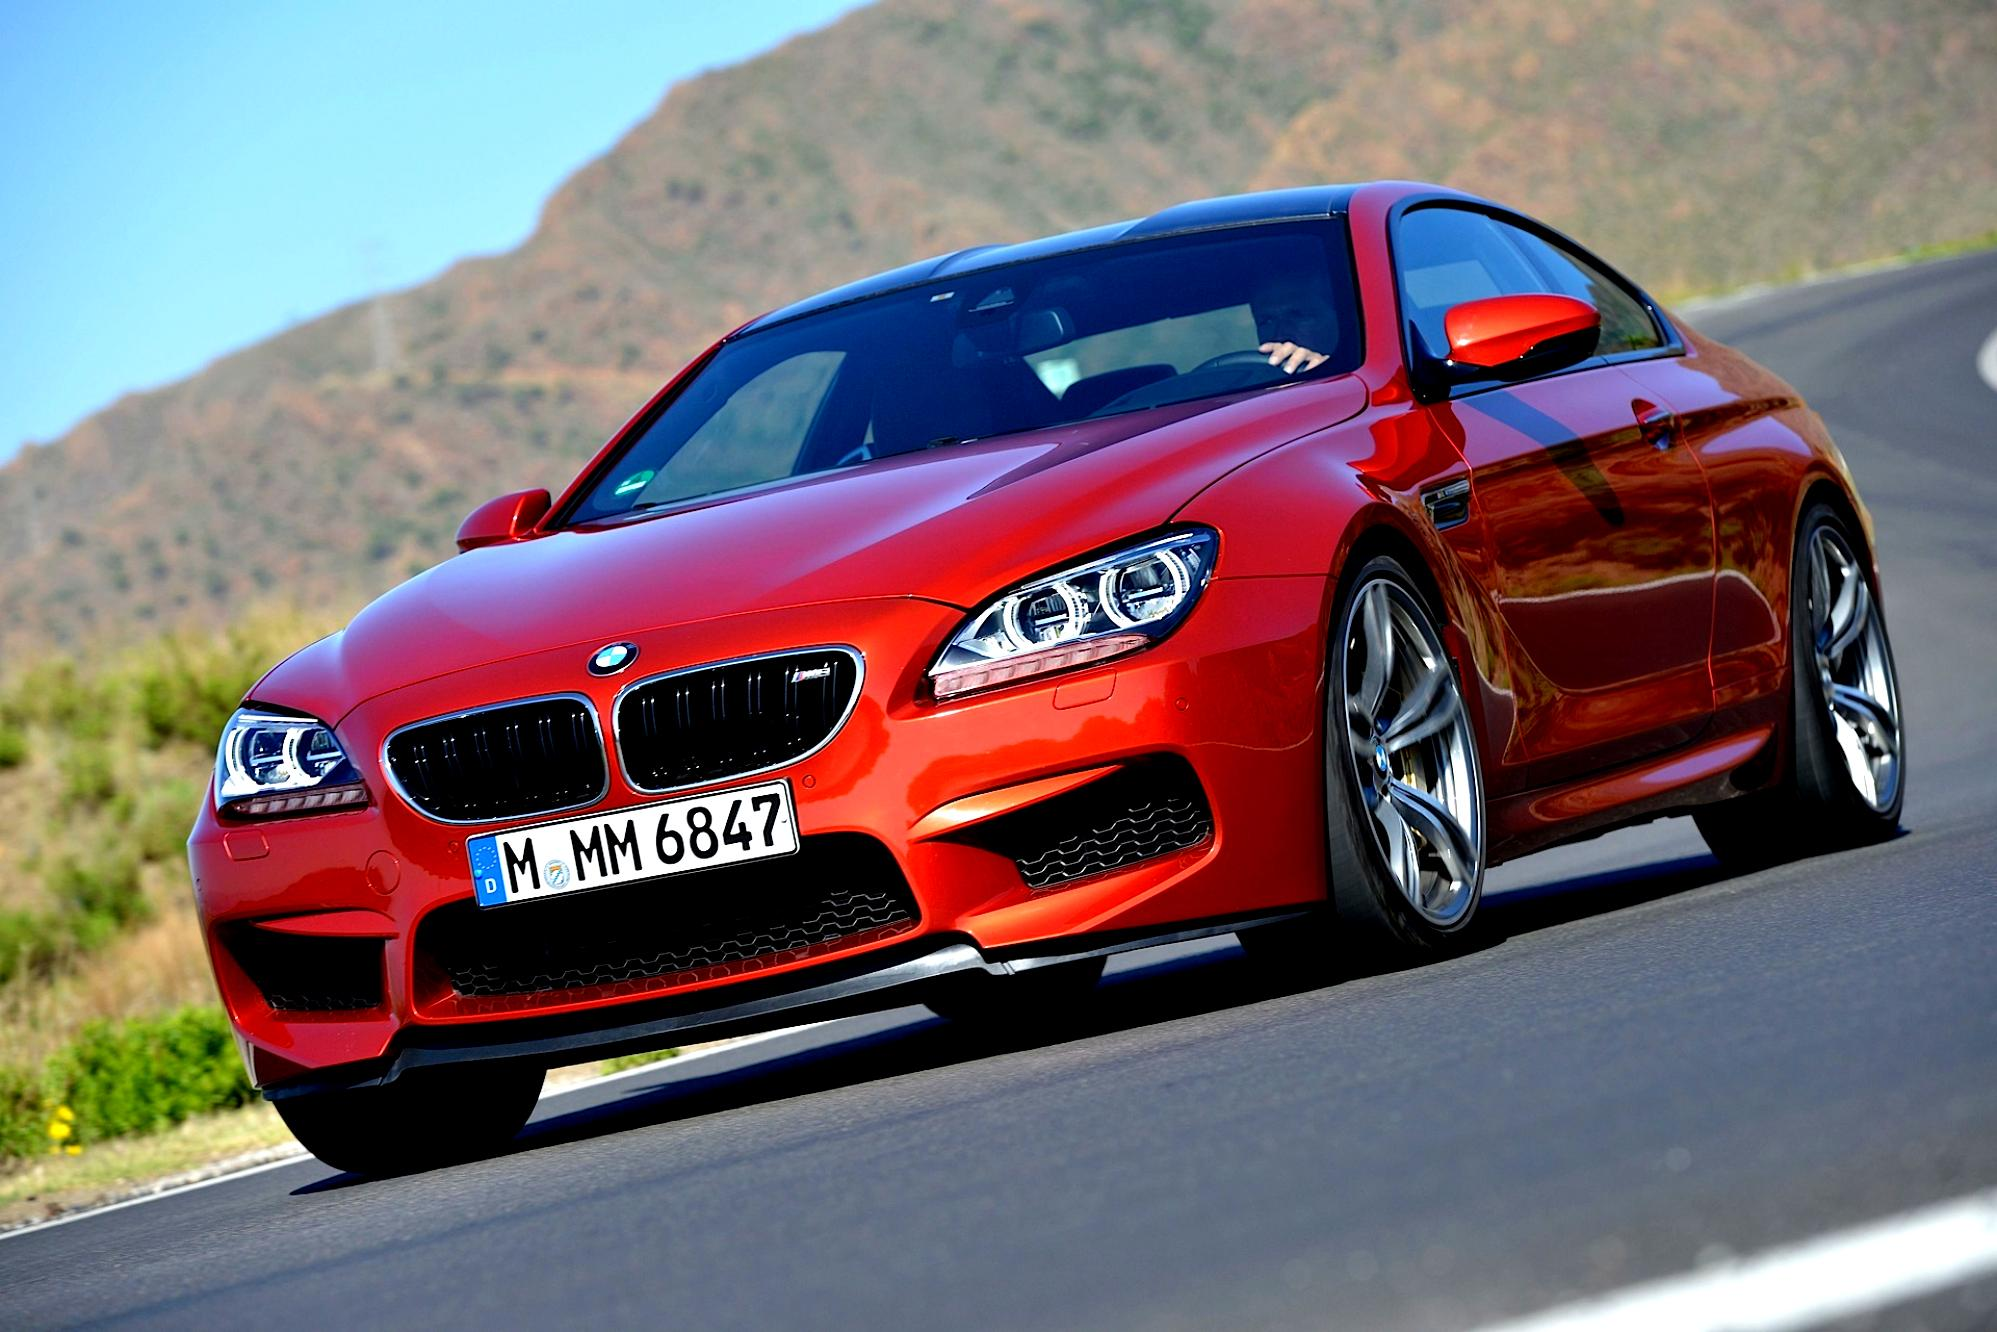 BMW M6 Coupe F13 2012 #63